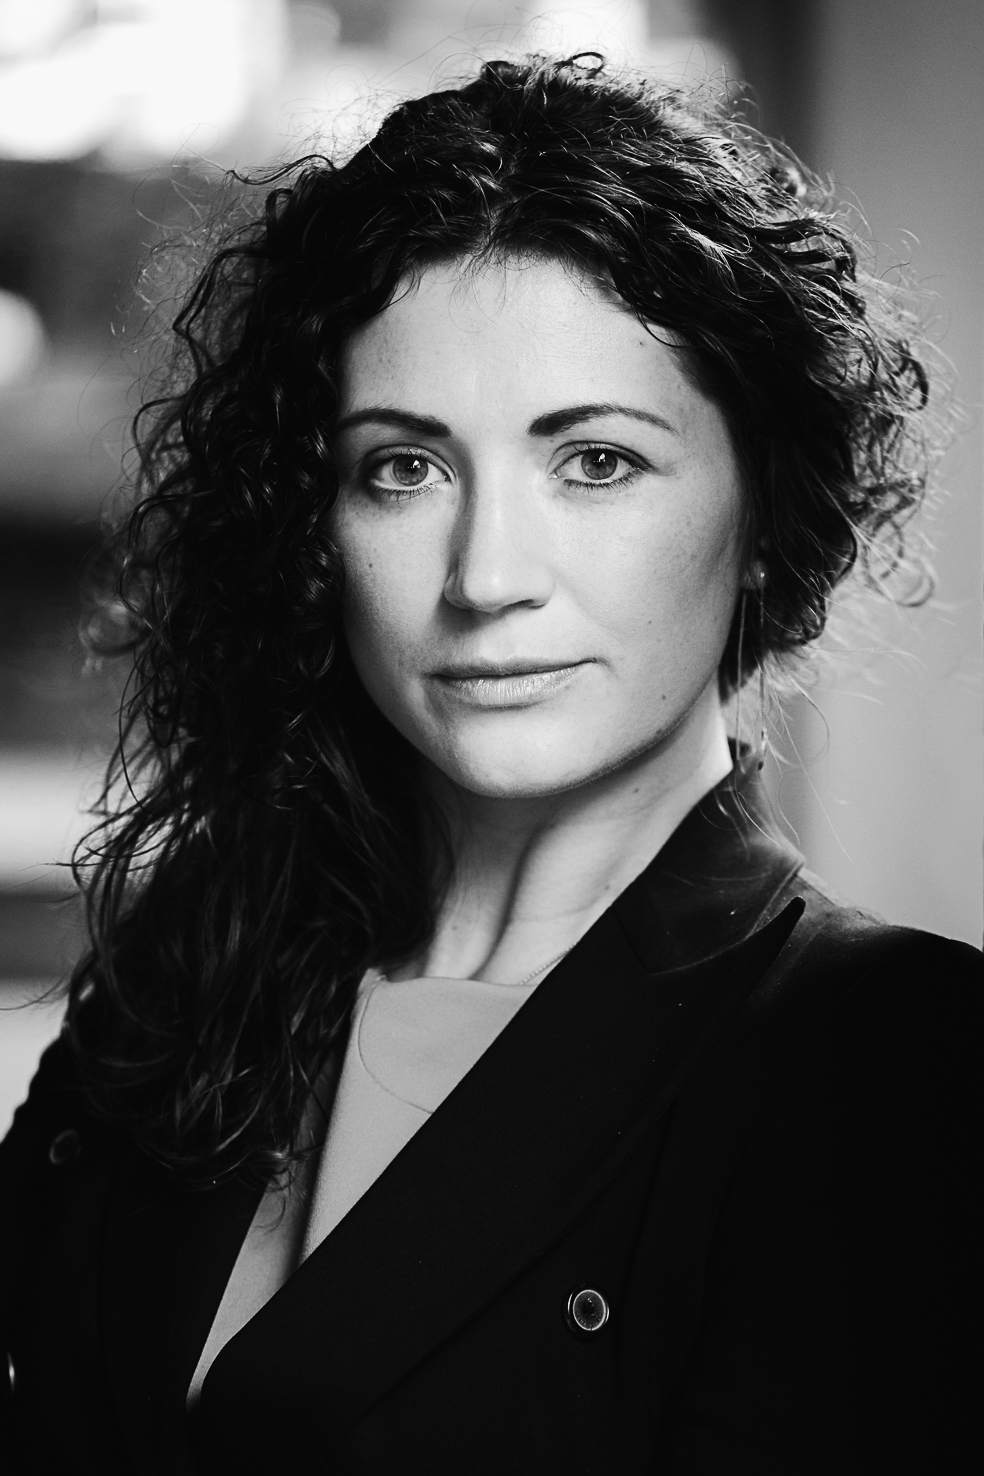 MP-Headshots-EgleBerruti-2.JPG